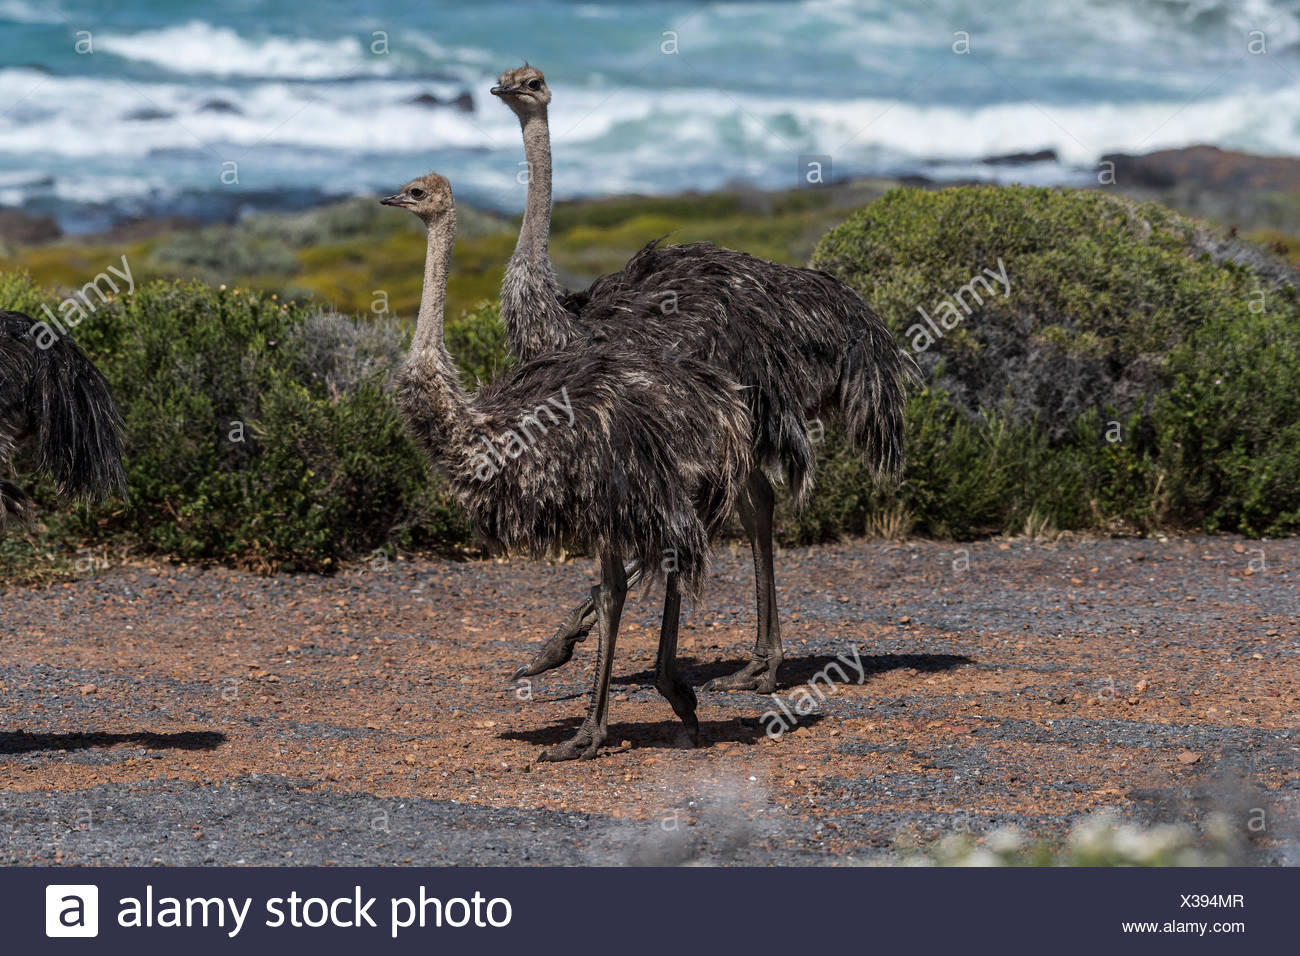 Ostriches (Struthio camelus), two young birds, Tafelberg national park, western Cape Province, South Africa - Stock Image